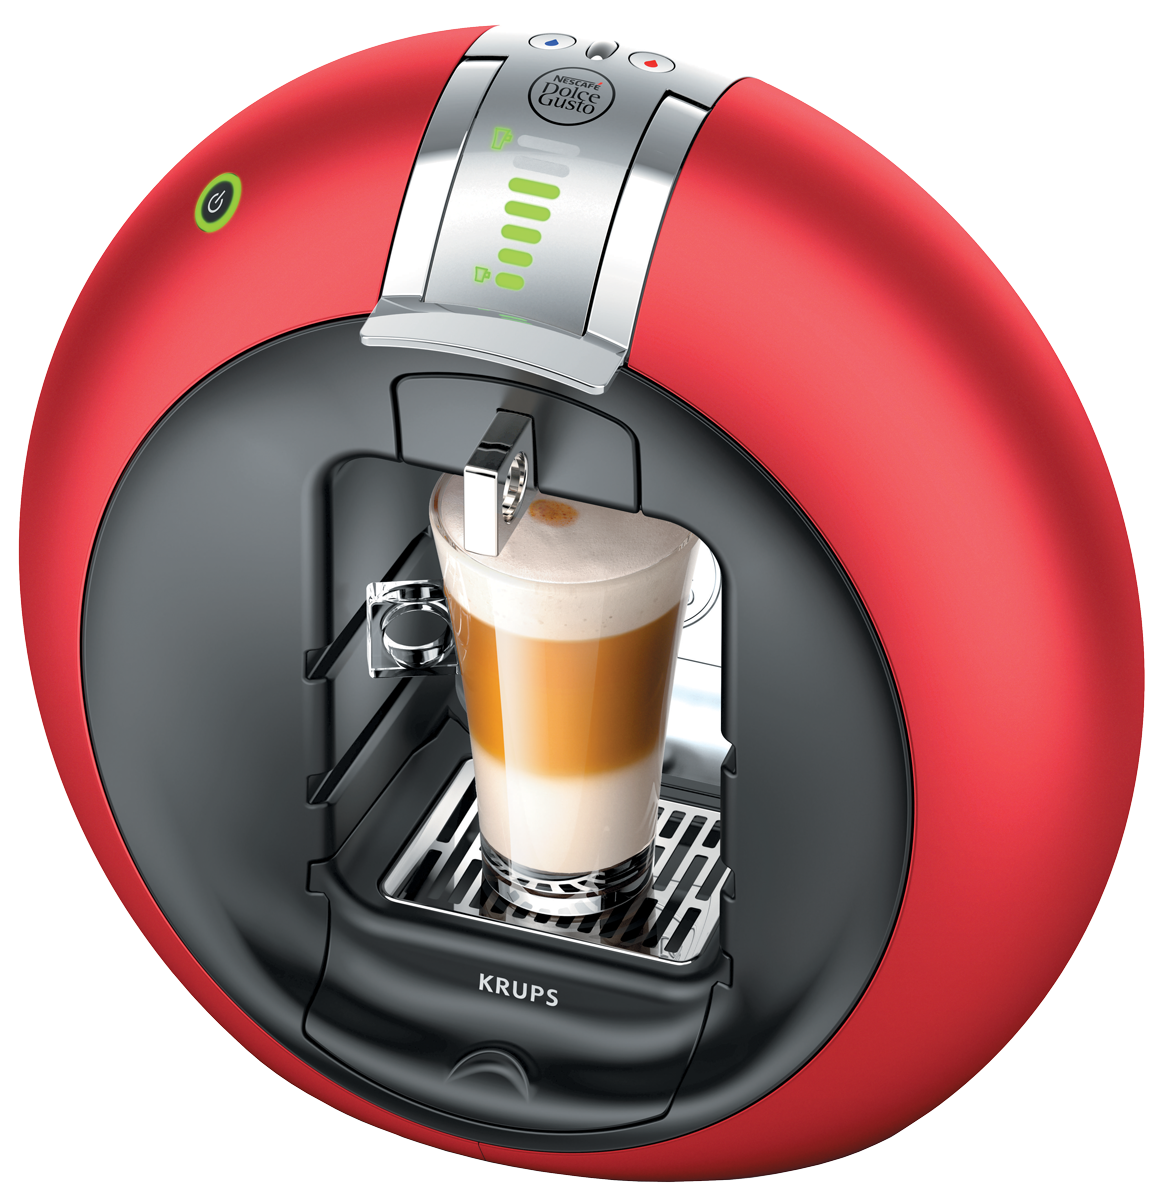 krups kp5105 nescaf dolce gusto circolo automatic rouge machines caf de nescafe dolce. Black Bedroom Furniture Sets. Home Design Ideas